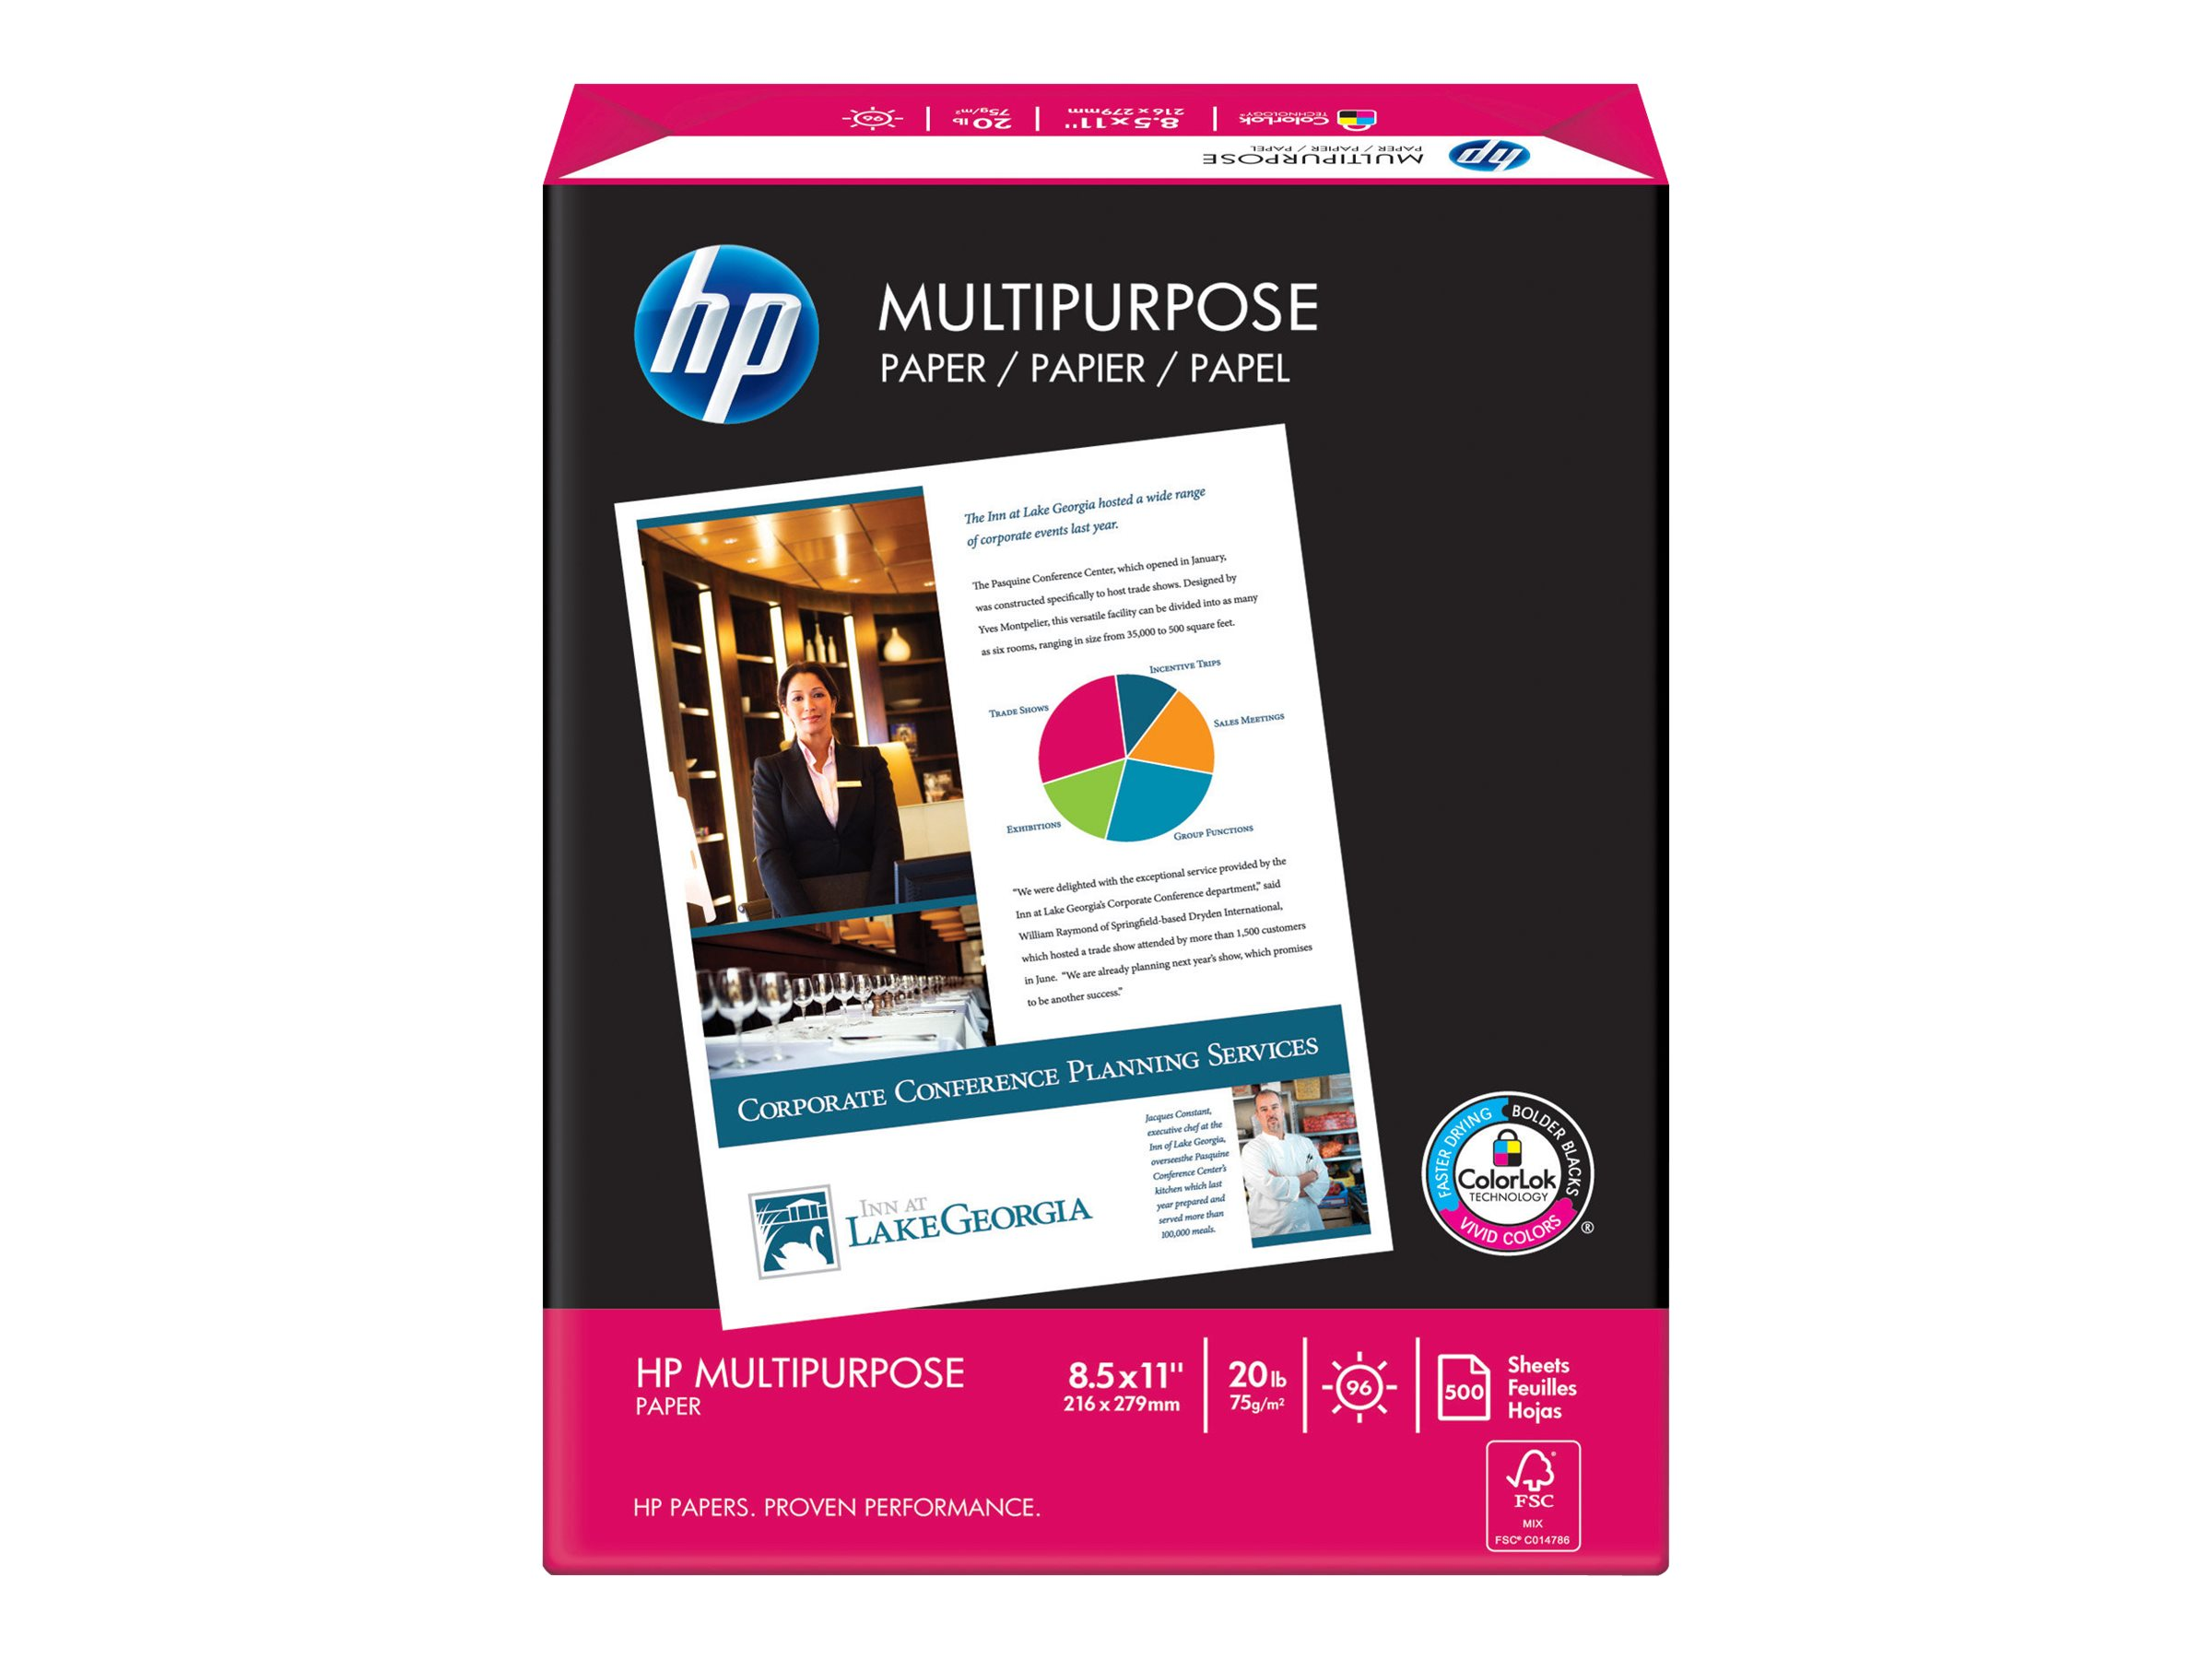 HP Multipurpose Paper - paper - 2500 pcs. - Letter - 75.2 g/m² - remarketed